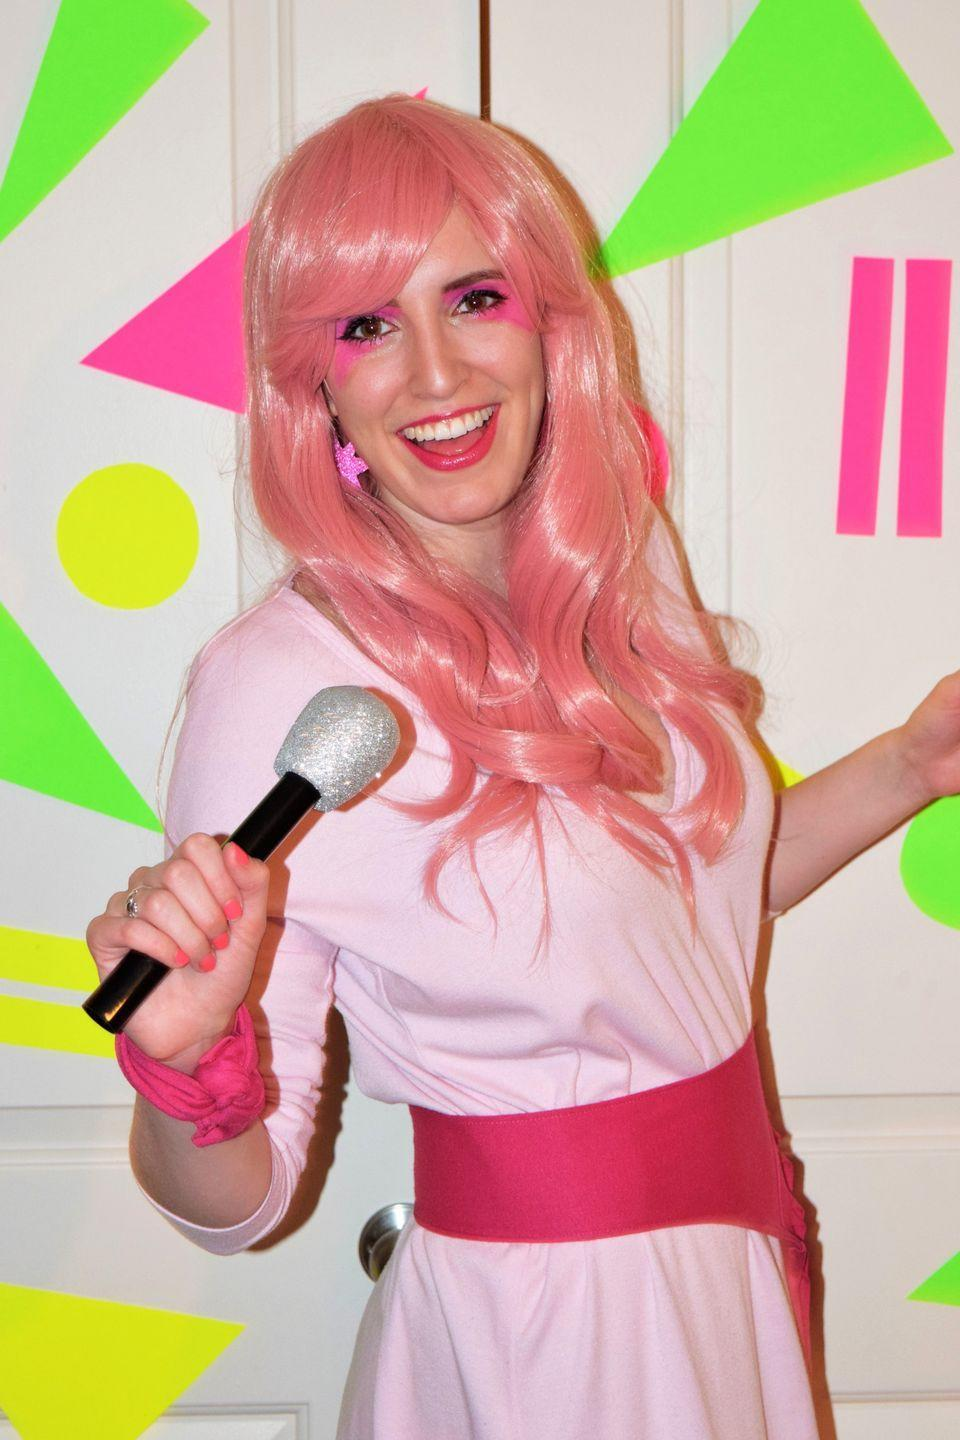 """<p>Glamour and glitter, fashion and fame! Make your '80s-kid dreams come true this Halloween by dressing up as Jem, the outrageous, pink-haired lead singer from the animated series <em>Jem and the Holograms. </em></p><p><strong>See more at <a href=""""https://sewbakedecorate.com/2016/05/24/80s-jem-and-the-holograms-costume-diy/"""" rel=""""nofollow noopener"""" target=""""_blank"""" data-ylk=""""slk:Sew Bake Decorate"""" class=""""link rapid-noclick-resp"""">Sew Bake Decorate</a>.</strong></p><p><a class=""""link rapid-noclick-resp"""" href=""""https://www.amazon.com/Jem-Holograms-color-PINK-Animation/dp/B0722ZFLKD?tag=syn-yahoo-20&ascsubtag=%5Bartid%7C2164.g.32645069%5Bsrc%7Cyahoo-us"""" rel=""""nofollow noopener"""" target=""""_blank"""" data-ylk=""""slk:SHOP PINK WIGS"""">SHOP PINK WIGS</a></p>"""